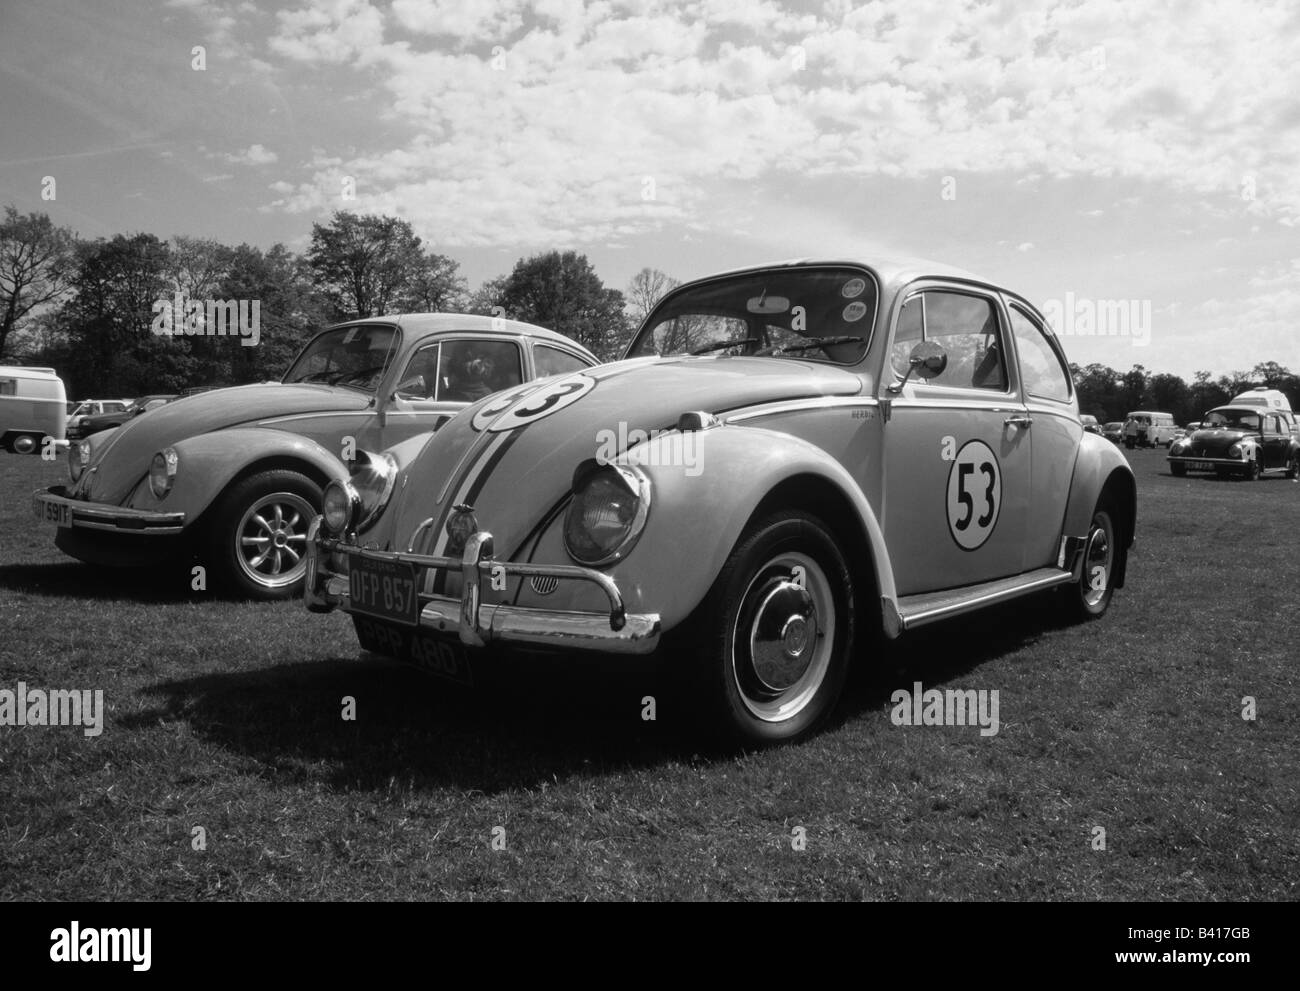 Volkswagen Beetle Herbie. car auto classic cool iconic - Stock Image